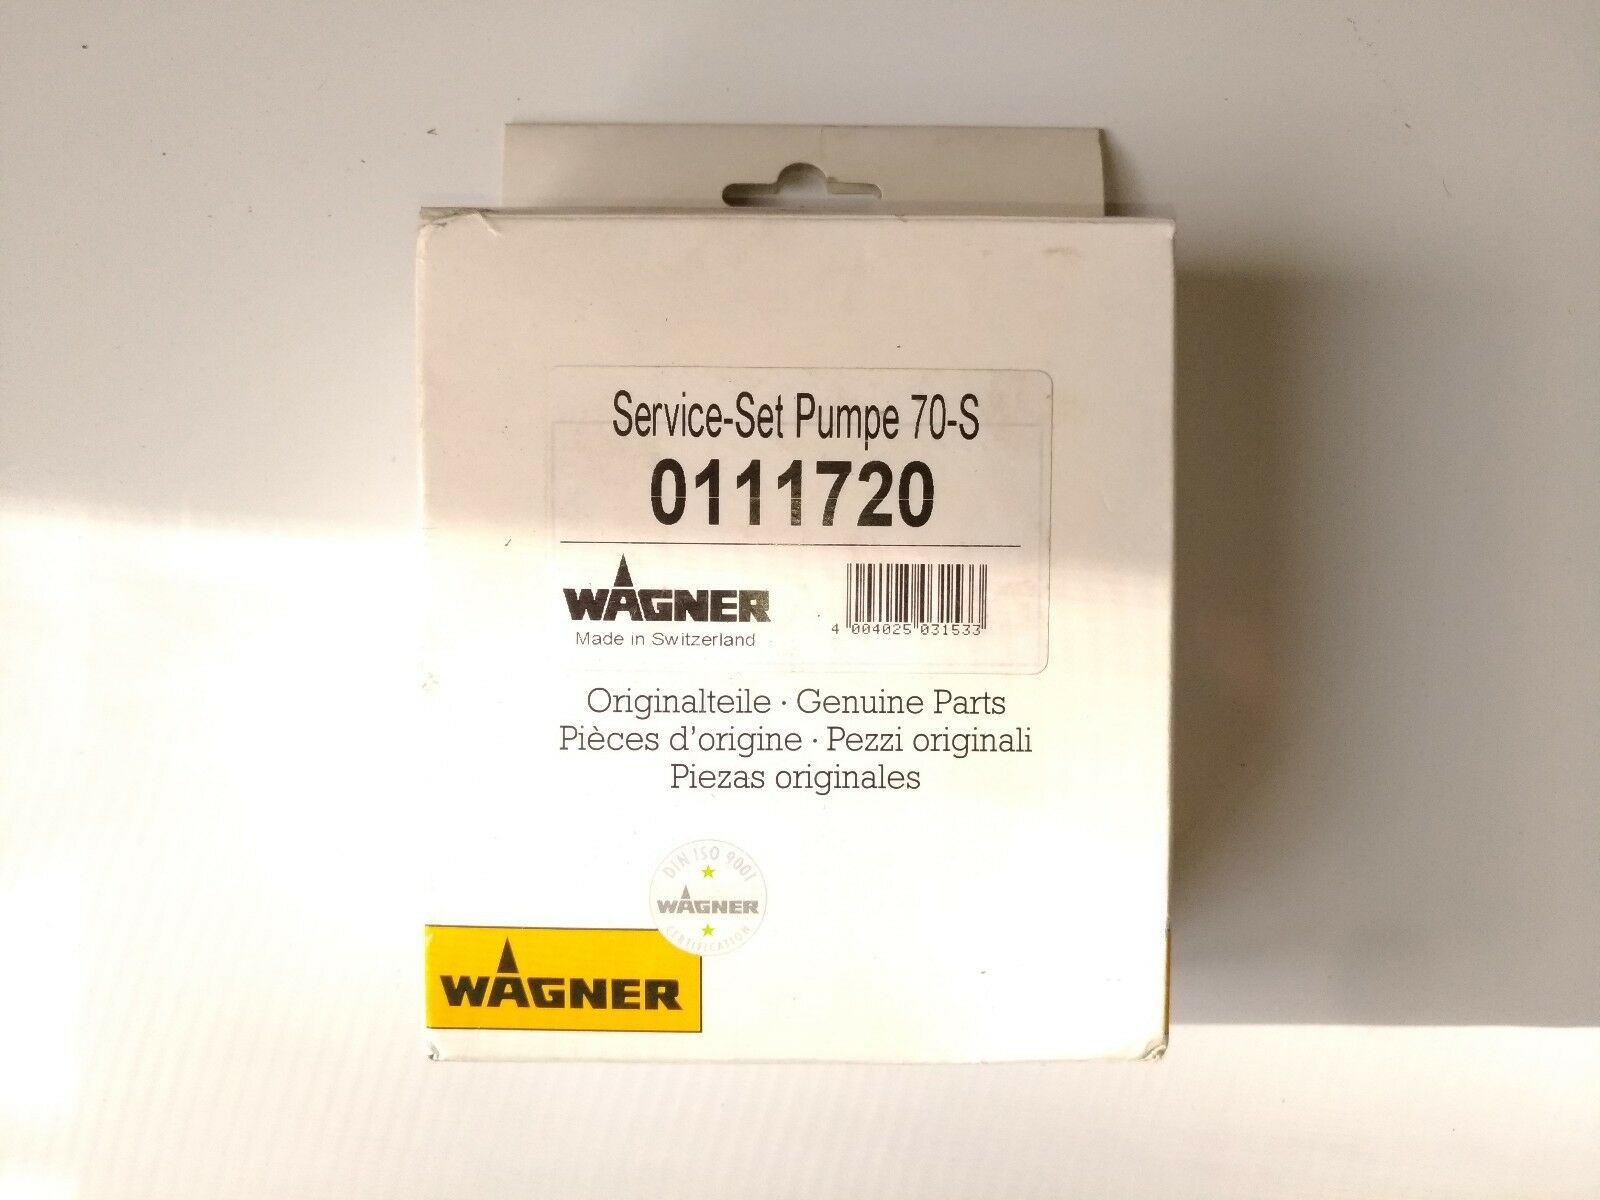 Wagner Airless Pneumatic  Air Powered 30-70 Service-Set Pump Kit No. 0111720